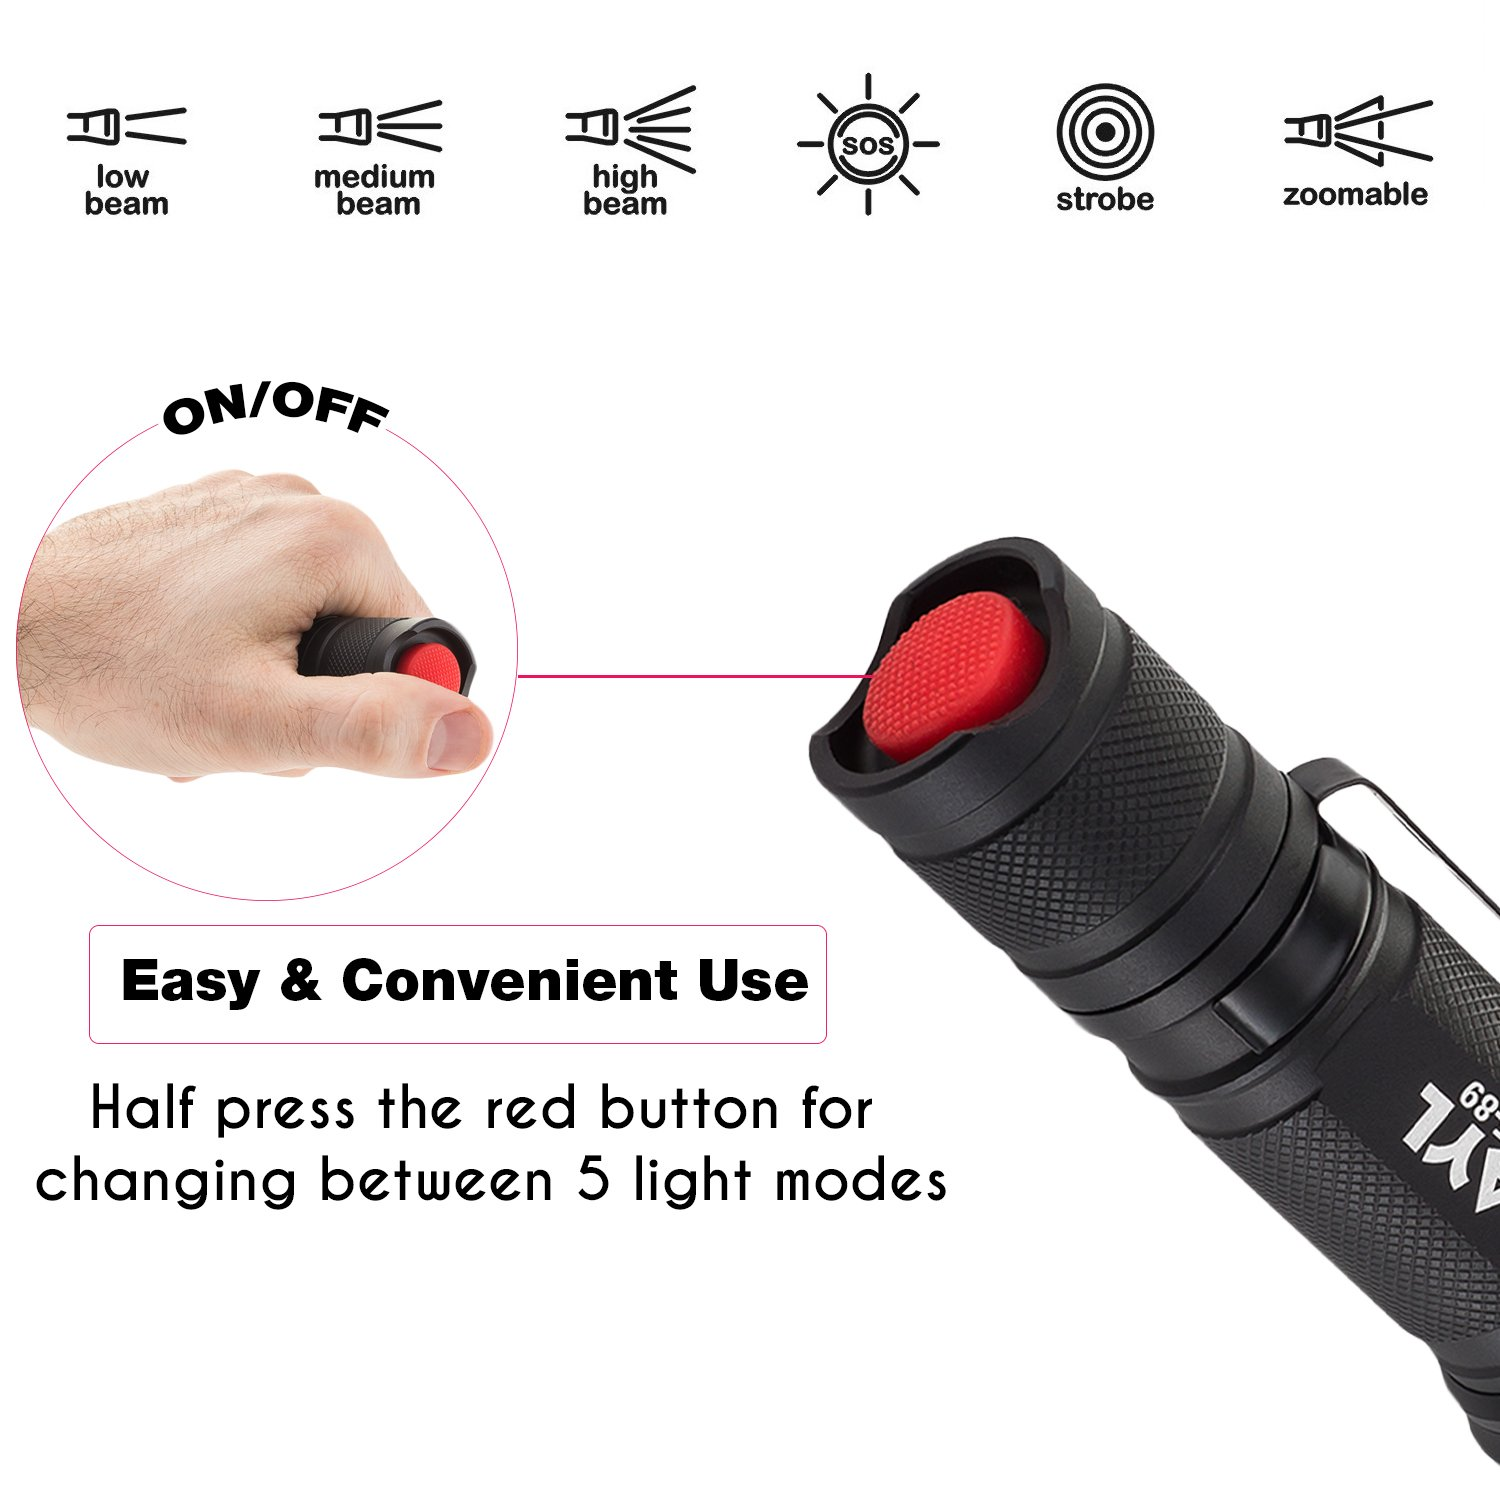 AYL LED Flashlight Tactical Flashlight - [2 Pack] 1000 High Lumens CREE Torch Light, Ultra Bright Emergency Handheld Flashlights by AYL (Image #4)